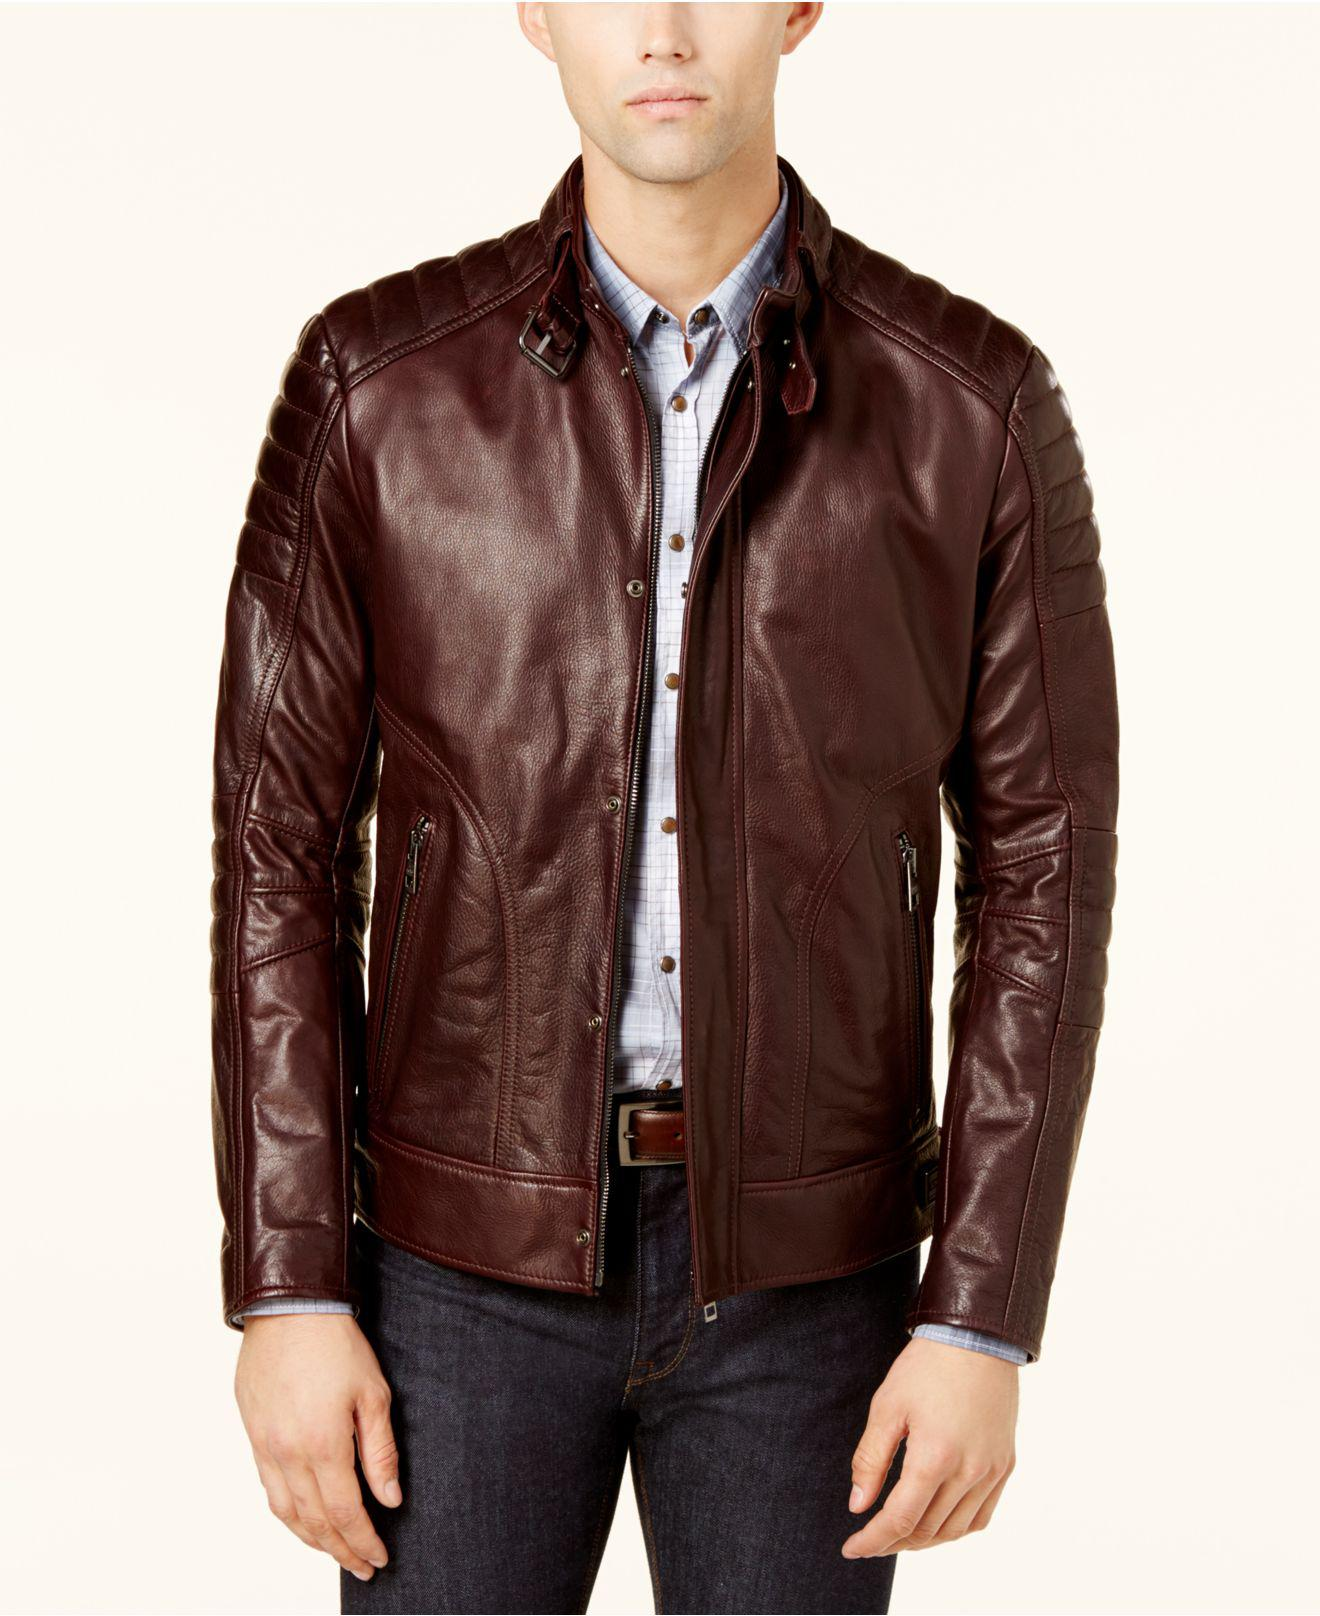 4af0b75da6 BOSS Men's Leather Jacket in Red for Men - Lyst